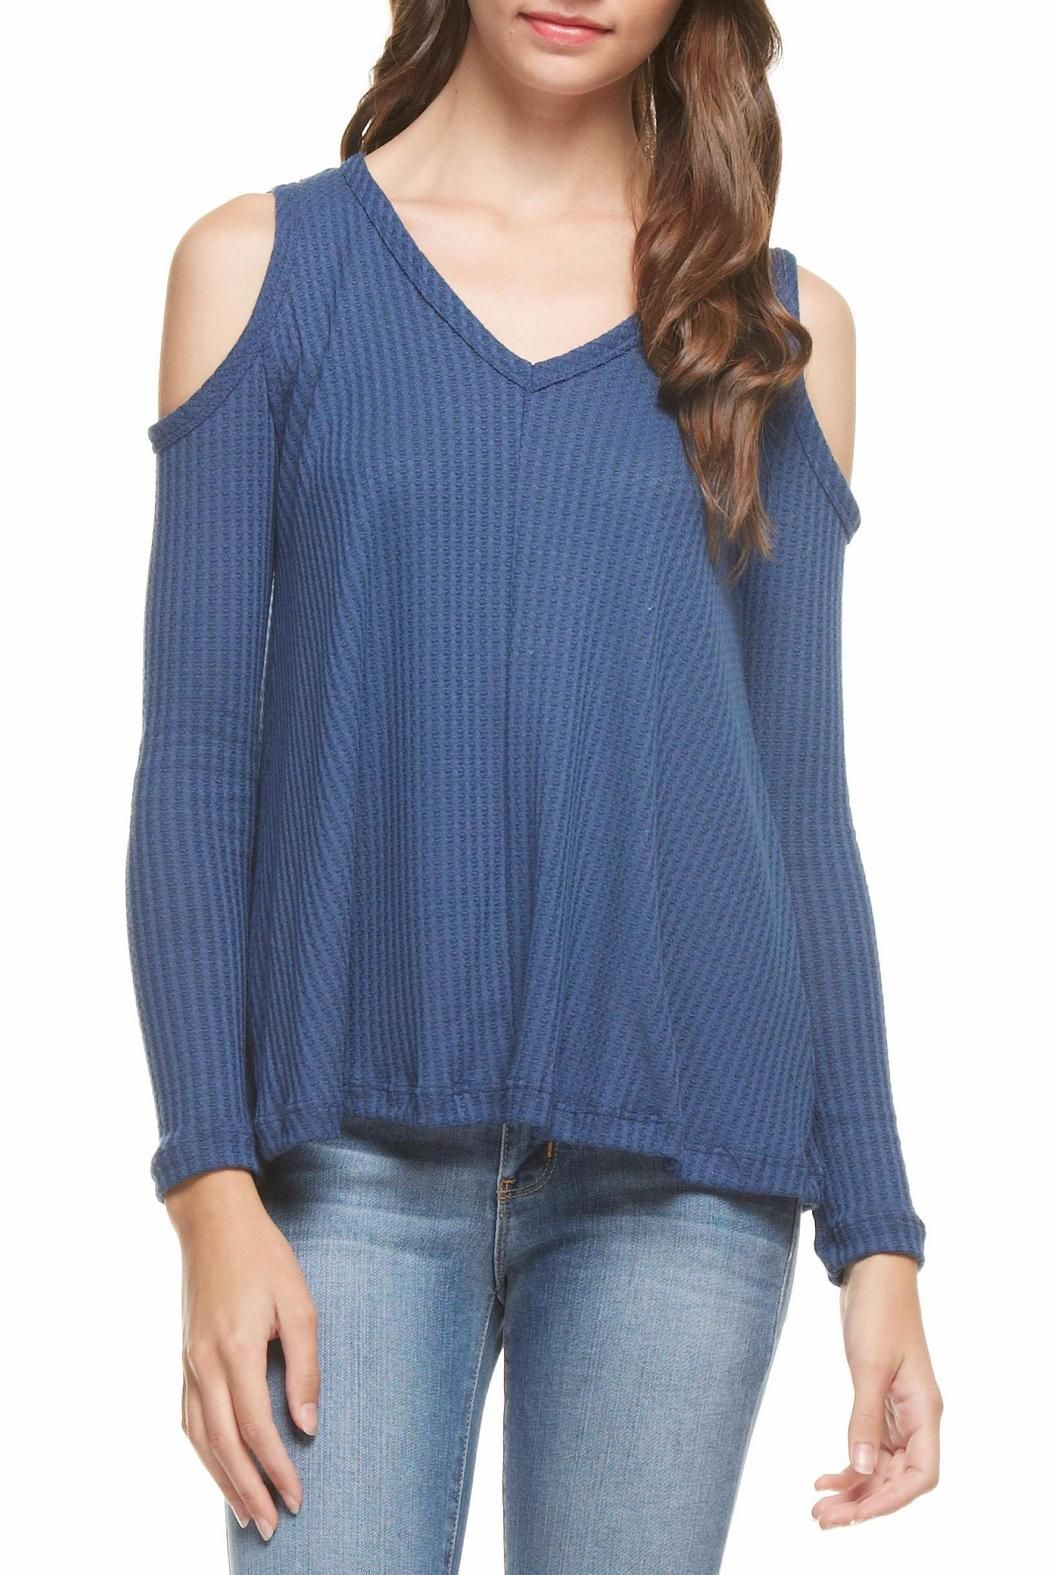 A dark denim blue V-neck textured top with a cold shoulder. The A-line cut gives this top a flattering fit. Wear with a floppy hat and some platforms for a 70's inspired look!   Cold Shoulder Top by Final Touch. Clothing - Tops - Casual Clothing - Tops - Long Sleeve Pennsylvania